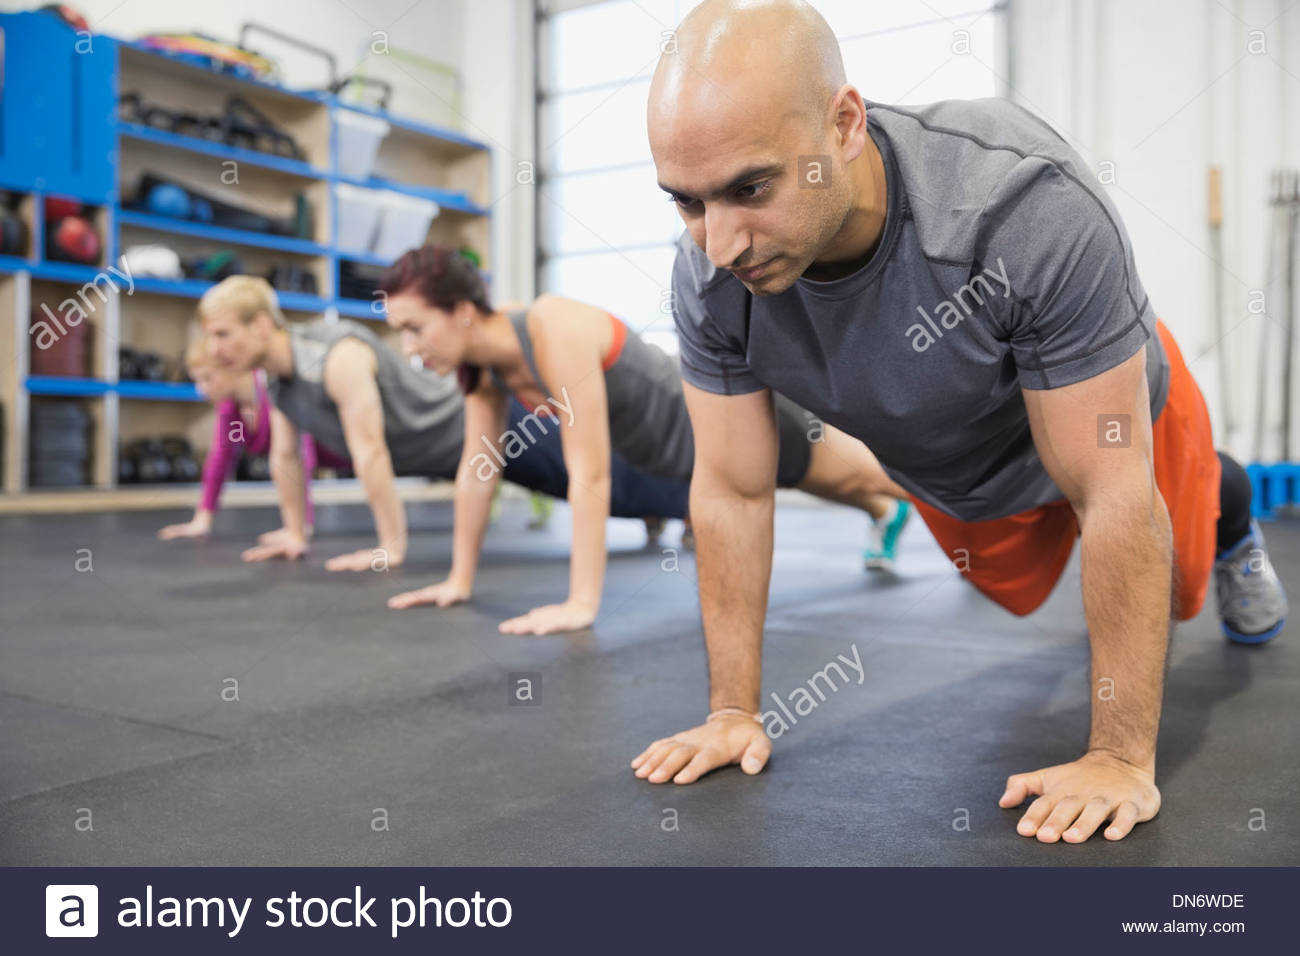 Man practicing plank hold Photo Stock